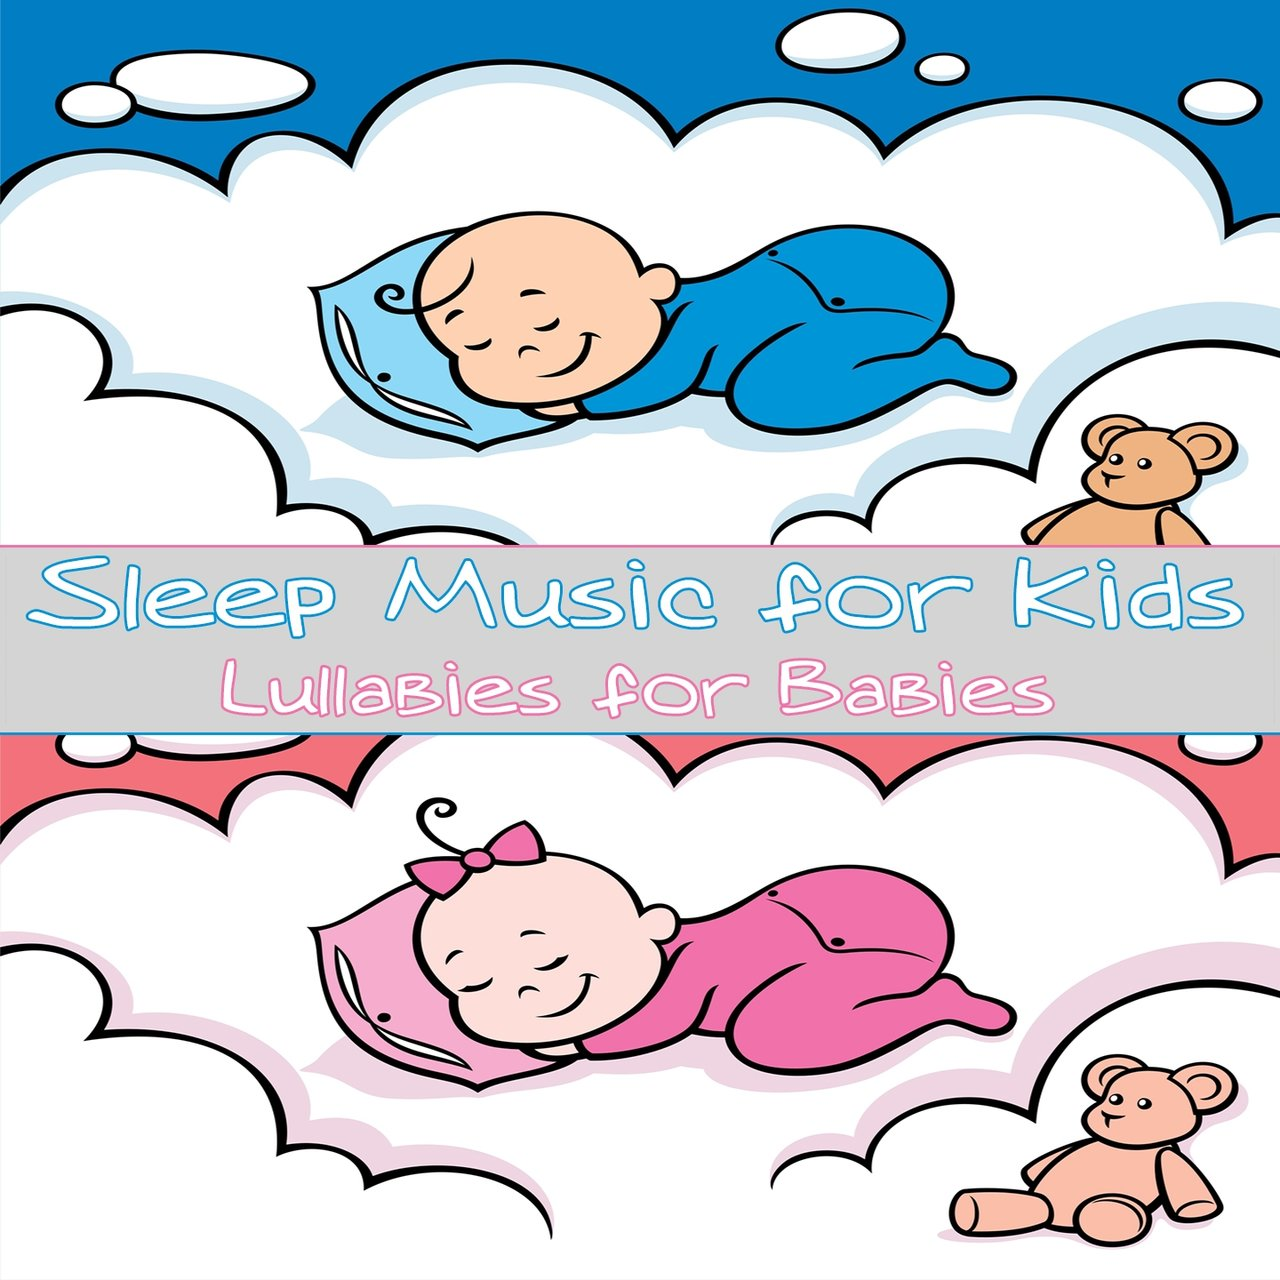 Sleep Music For Kids Listen To Sleep Music For Kids By Jl Mc Gregor On Tidal